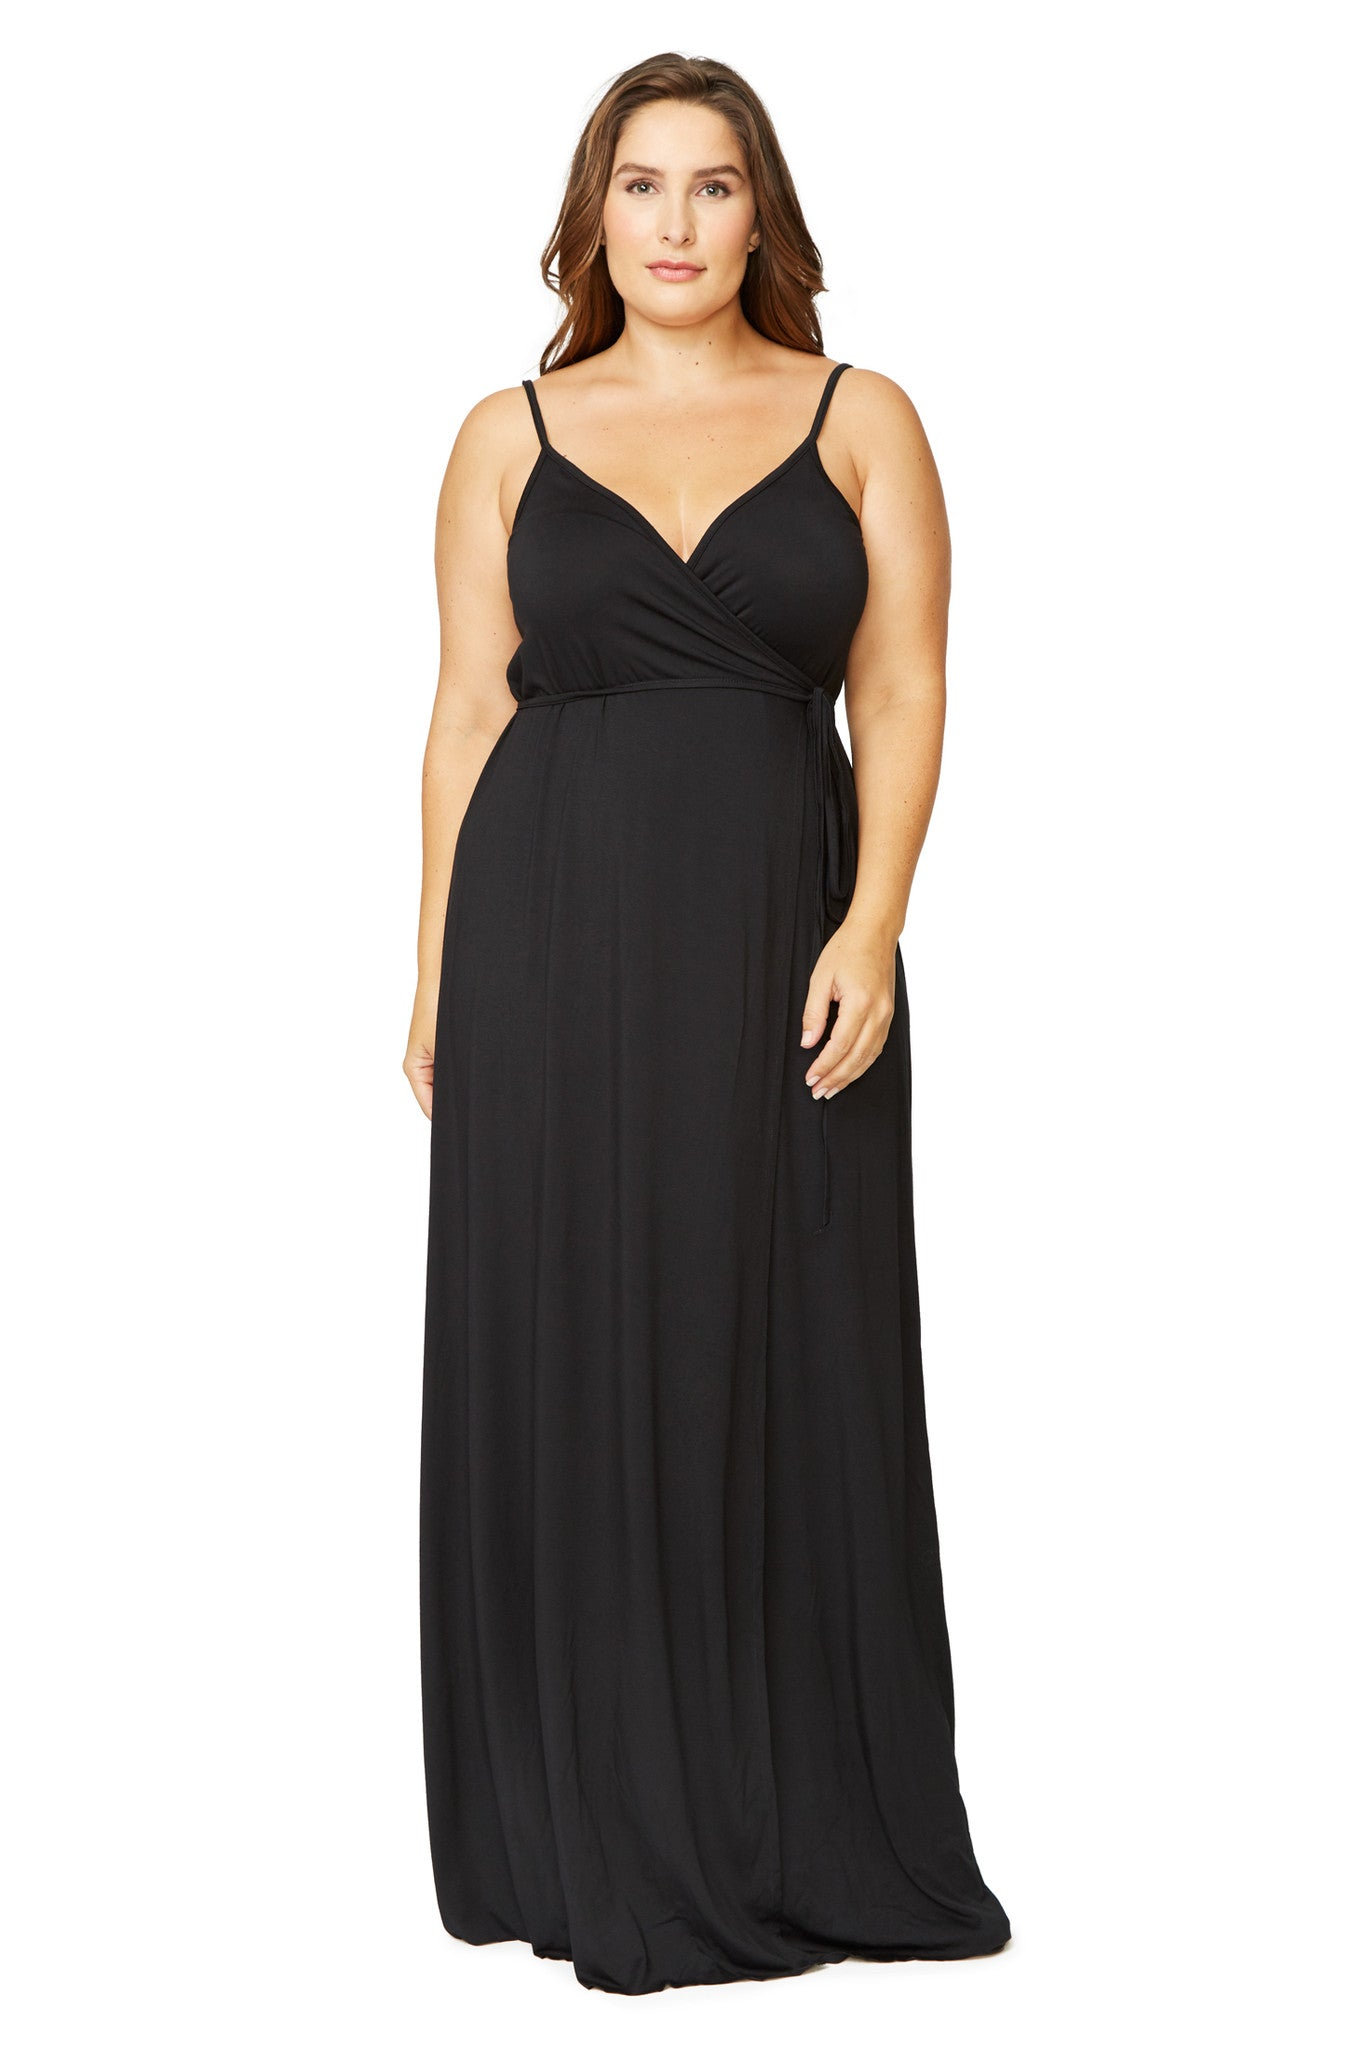 SPAGHETTI WRAP DRESS WL - BLACK